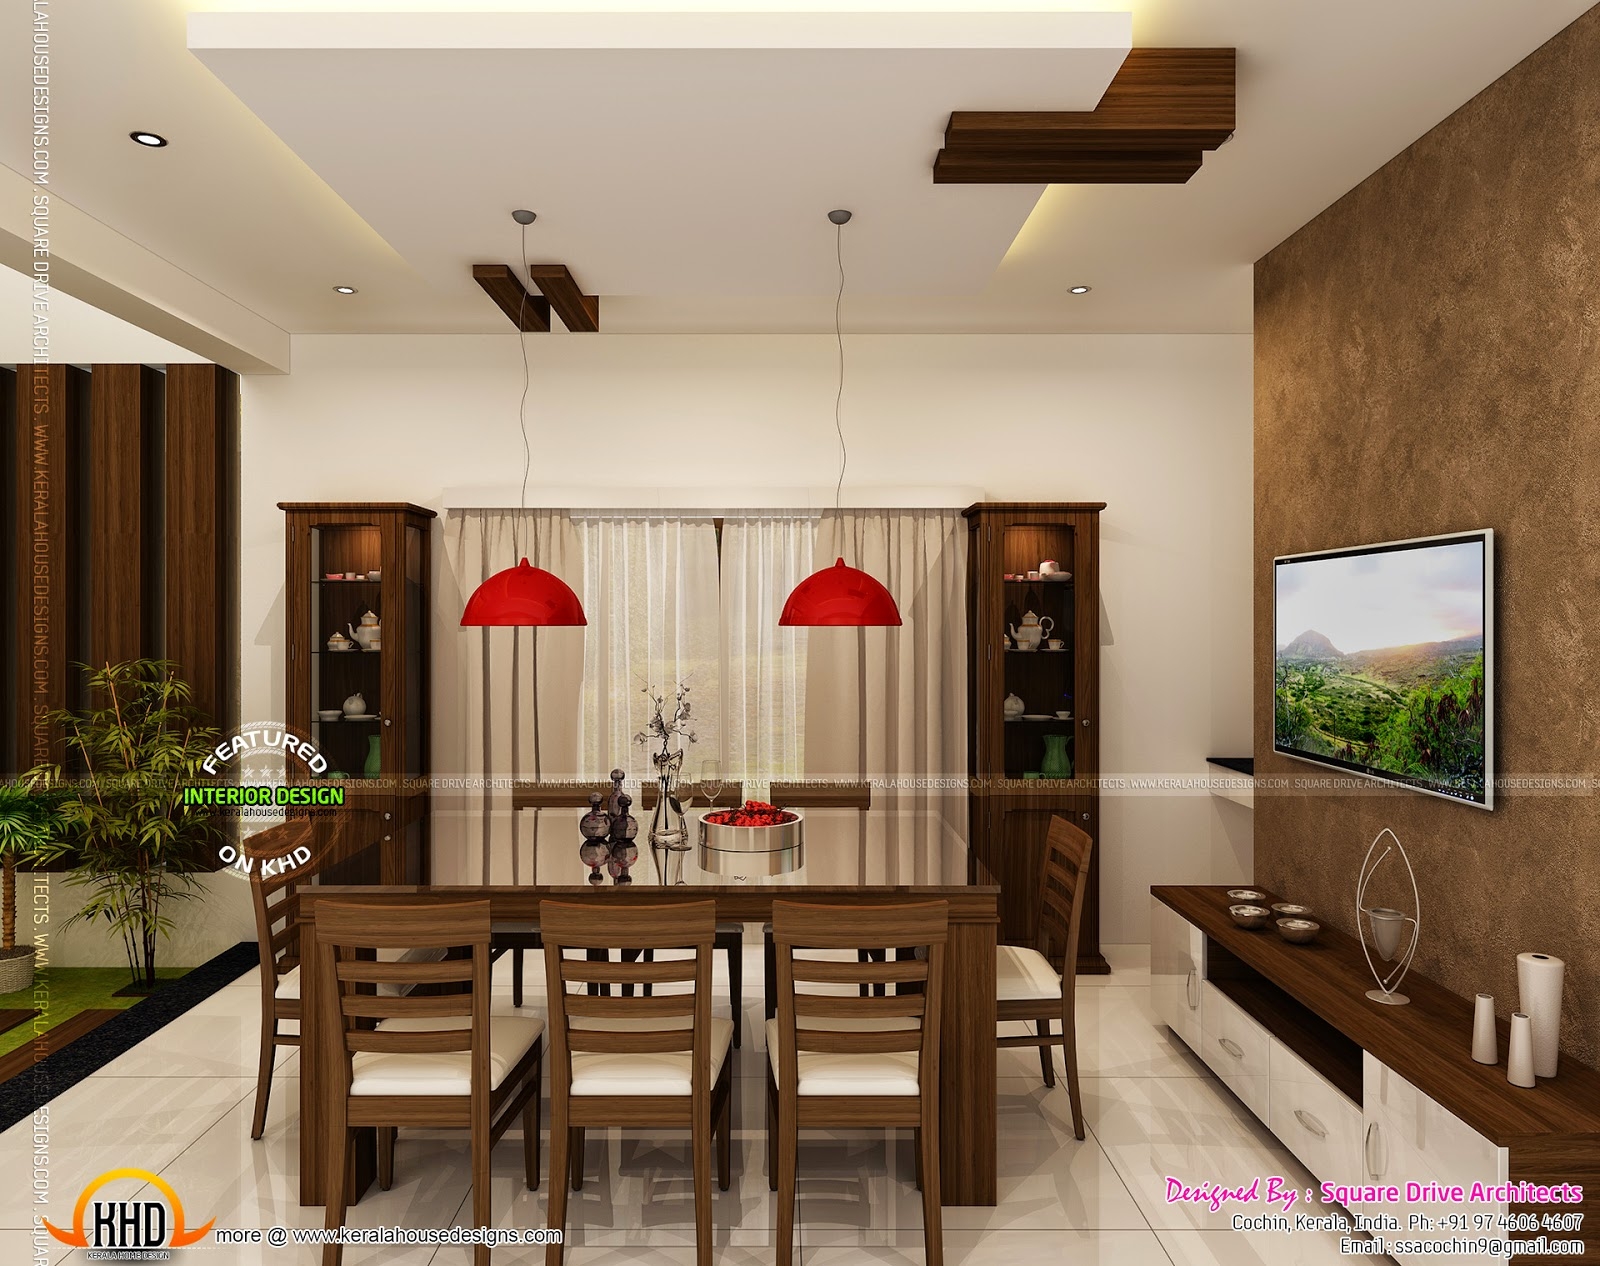 Home interiors designs kerala home design and floor plans - House interior designs ...